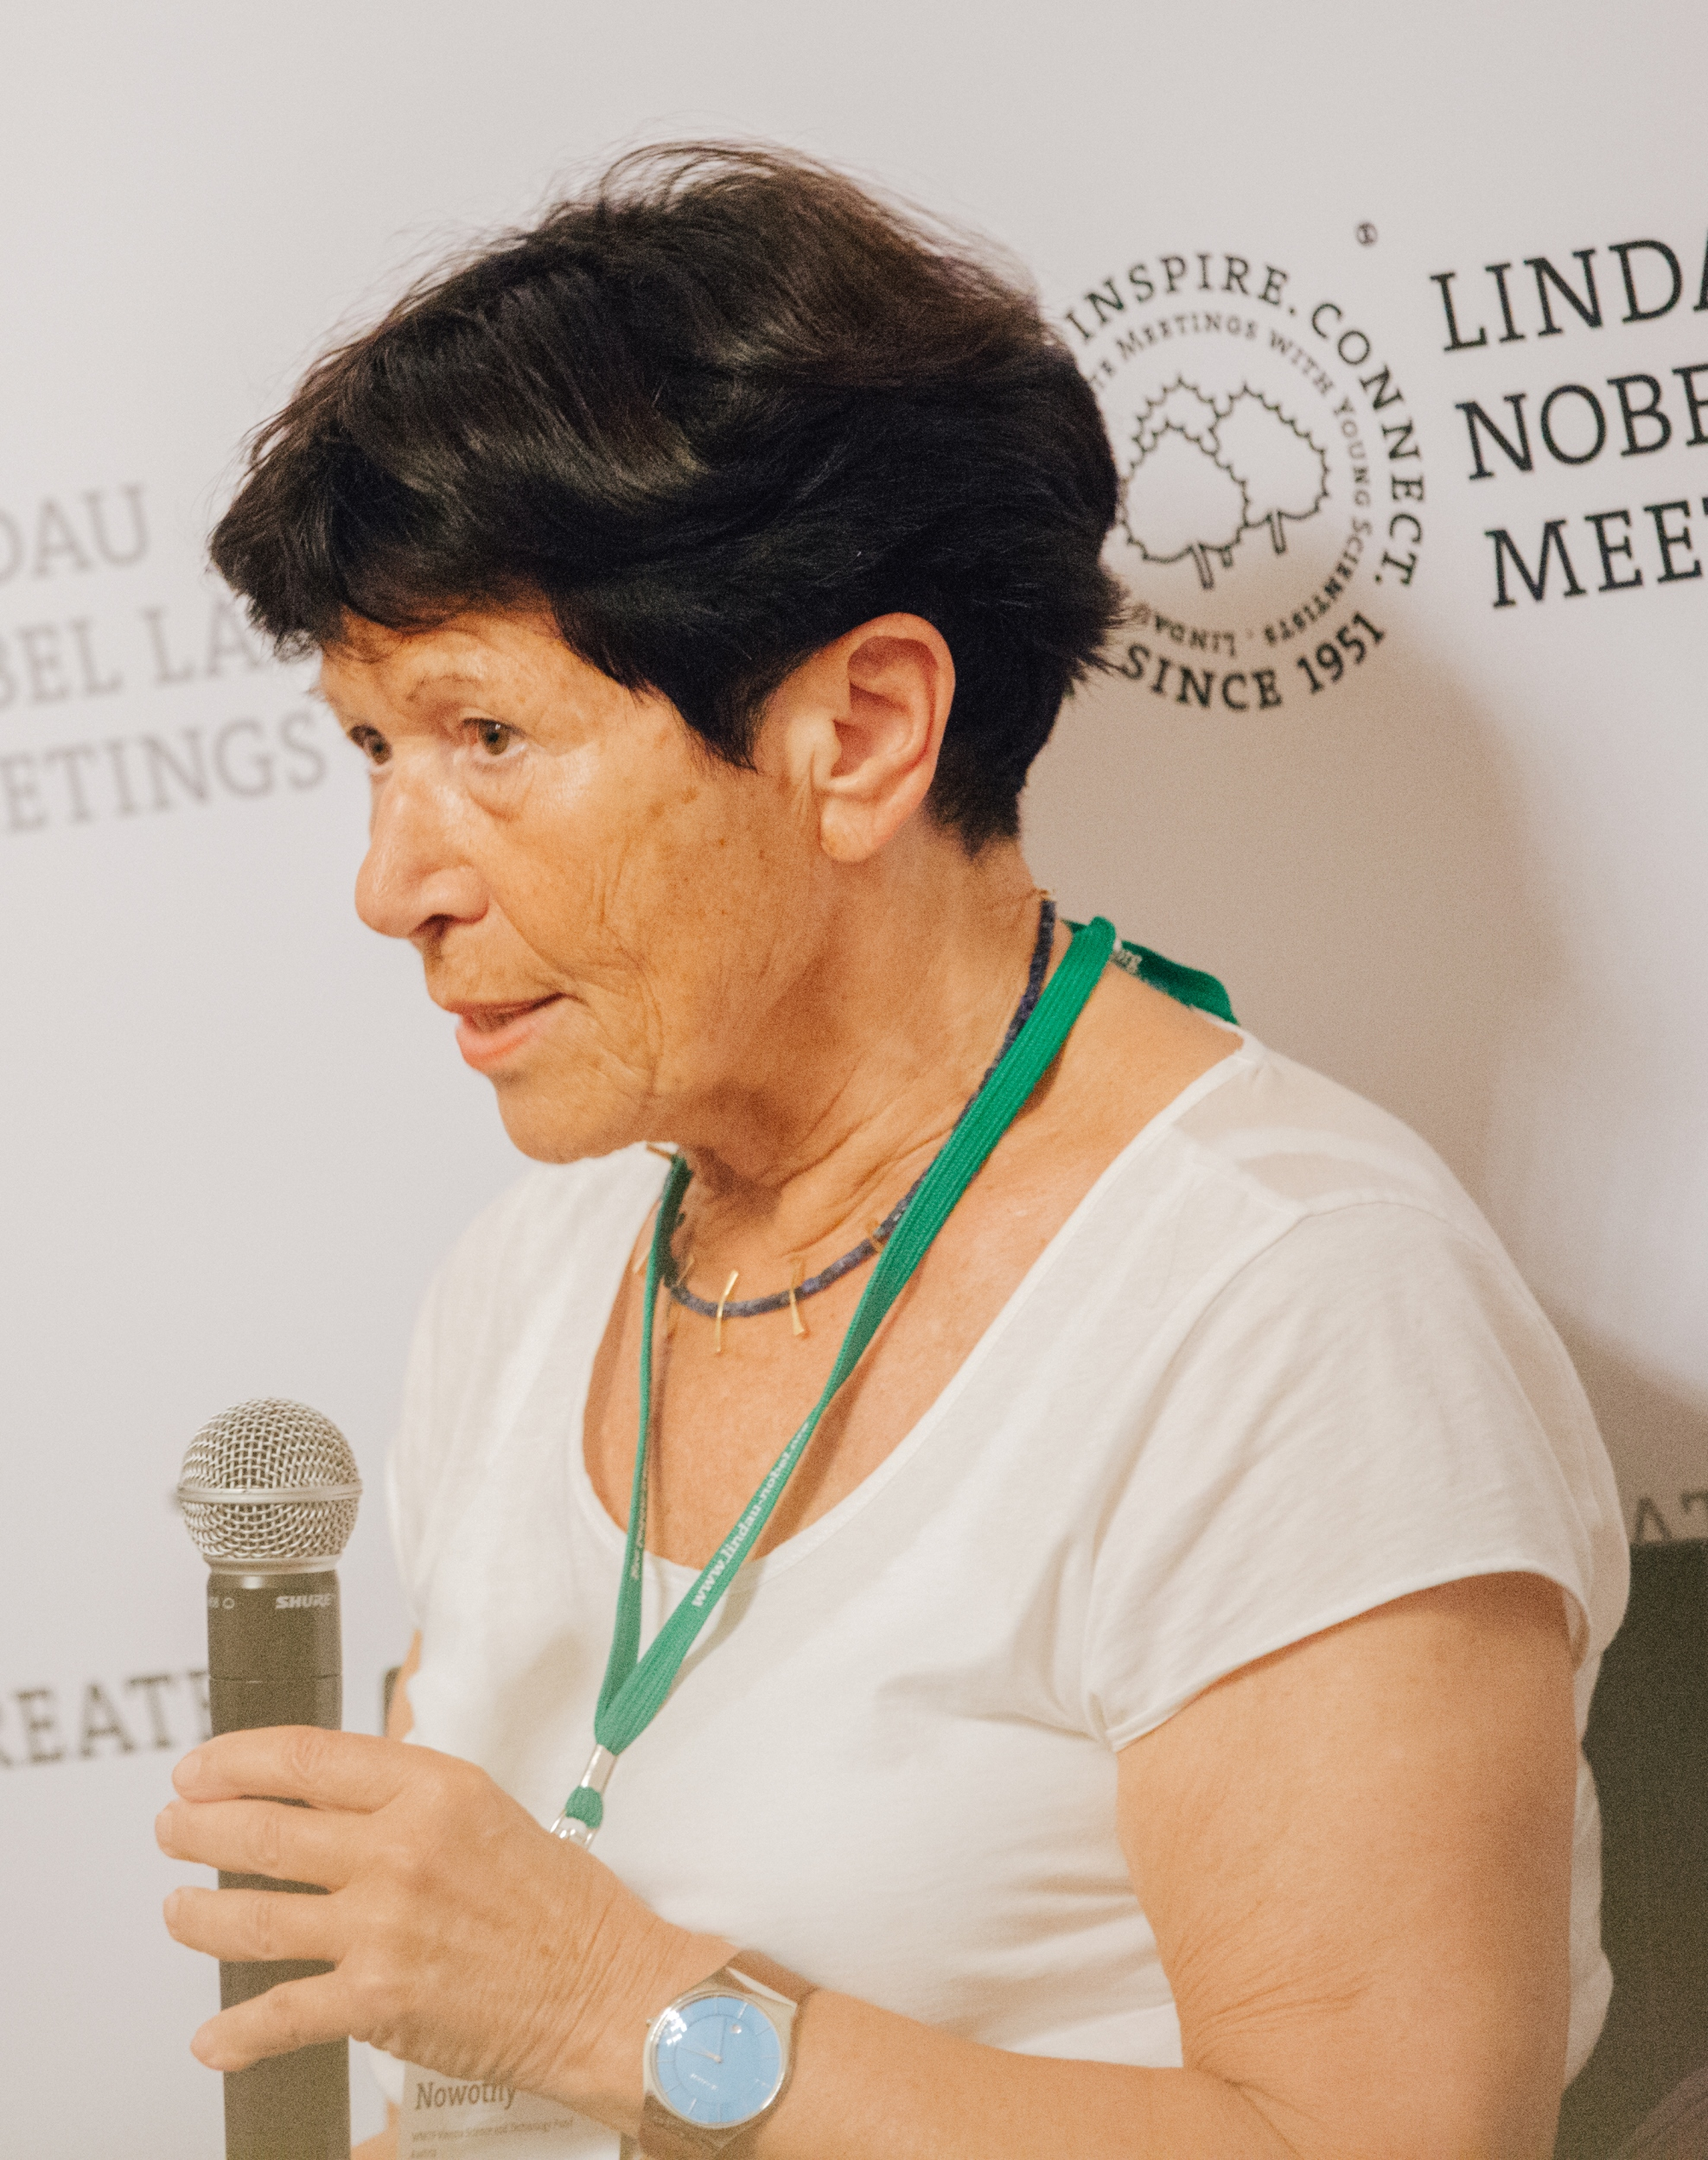 Helga Nowotny was speaking as a panellist at a press talk on 'Science in a Post-Truth Era' during the 67th Lindau Meeting. Credit: Julia Nimke/Lindau Nobel Laureate Meetings